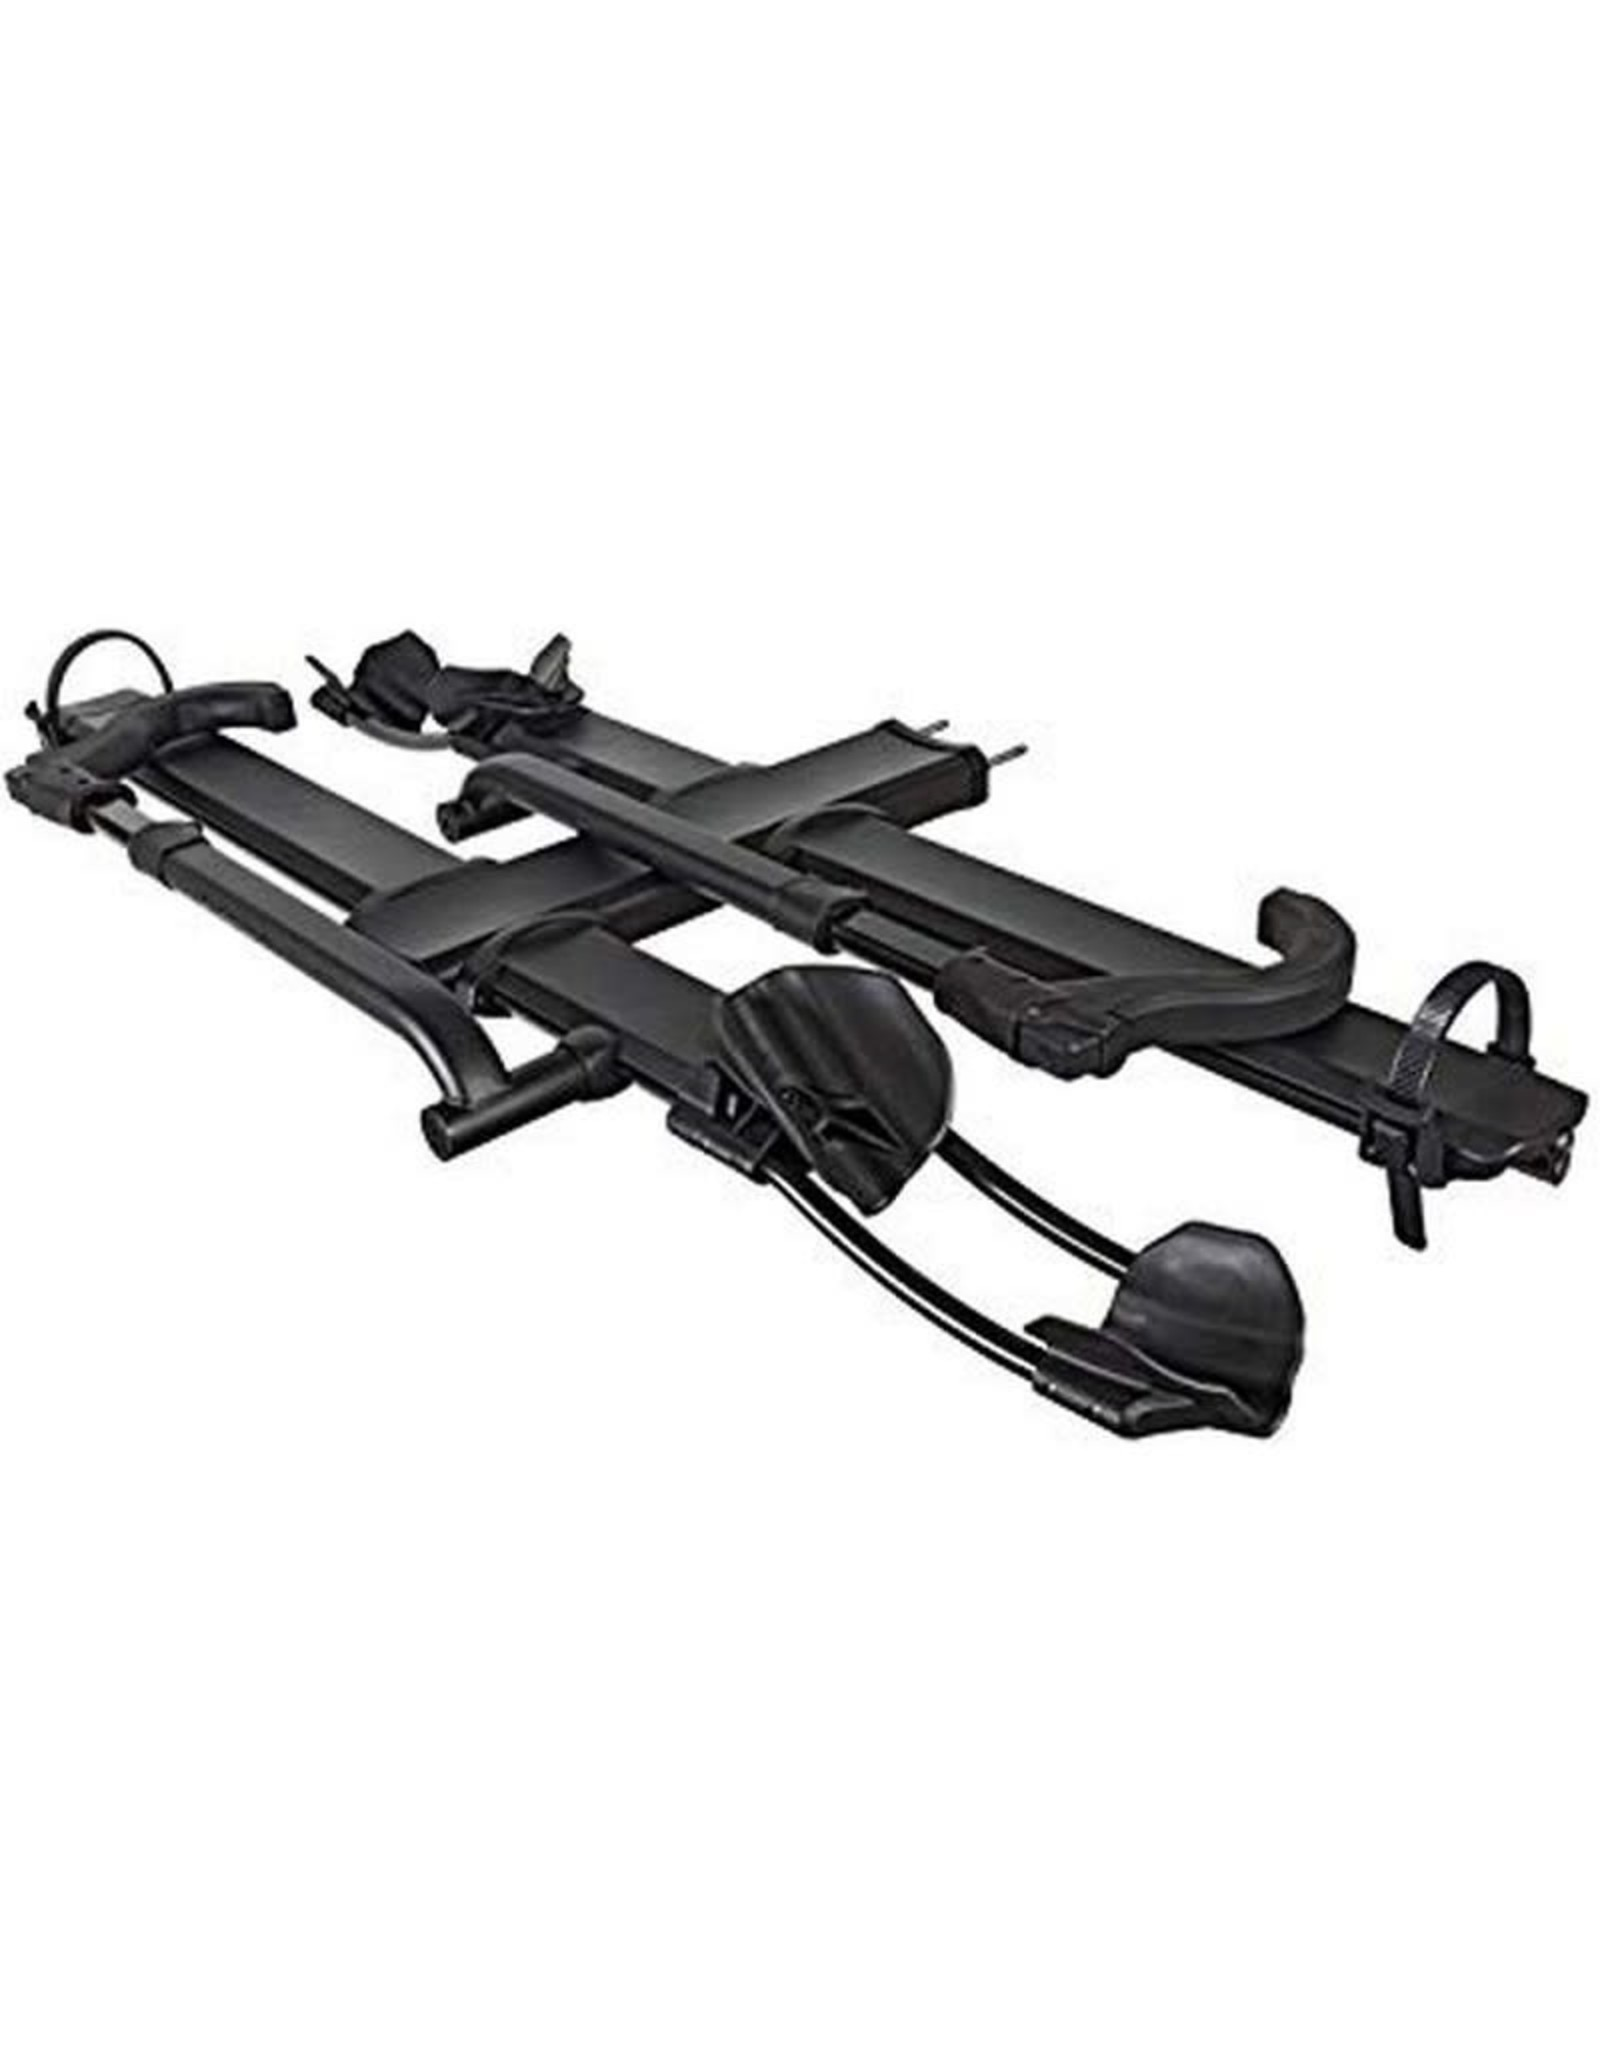 "Kuat Rack Kuat NV Base 2.0 Add-On - 2"" - 2 Matte Black"